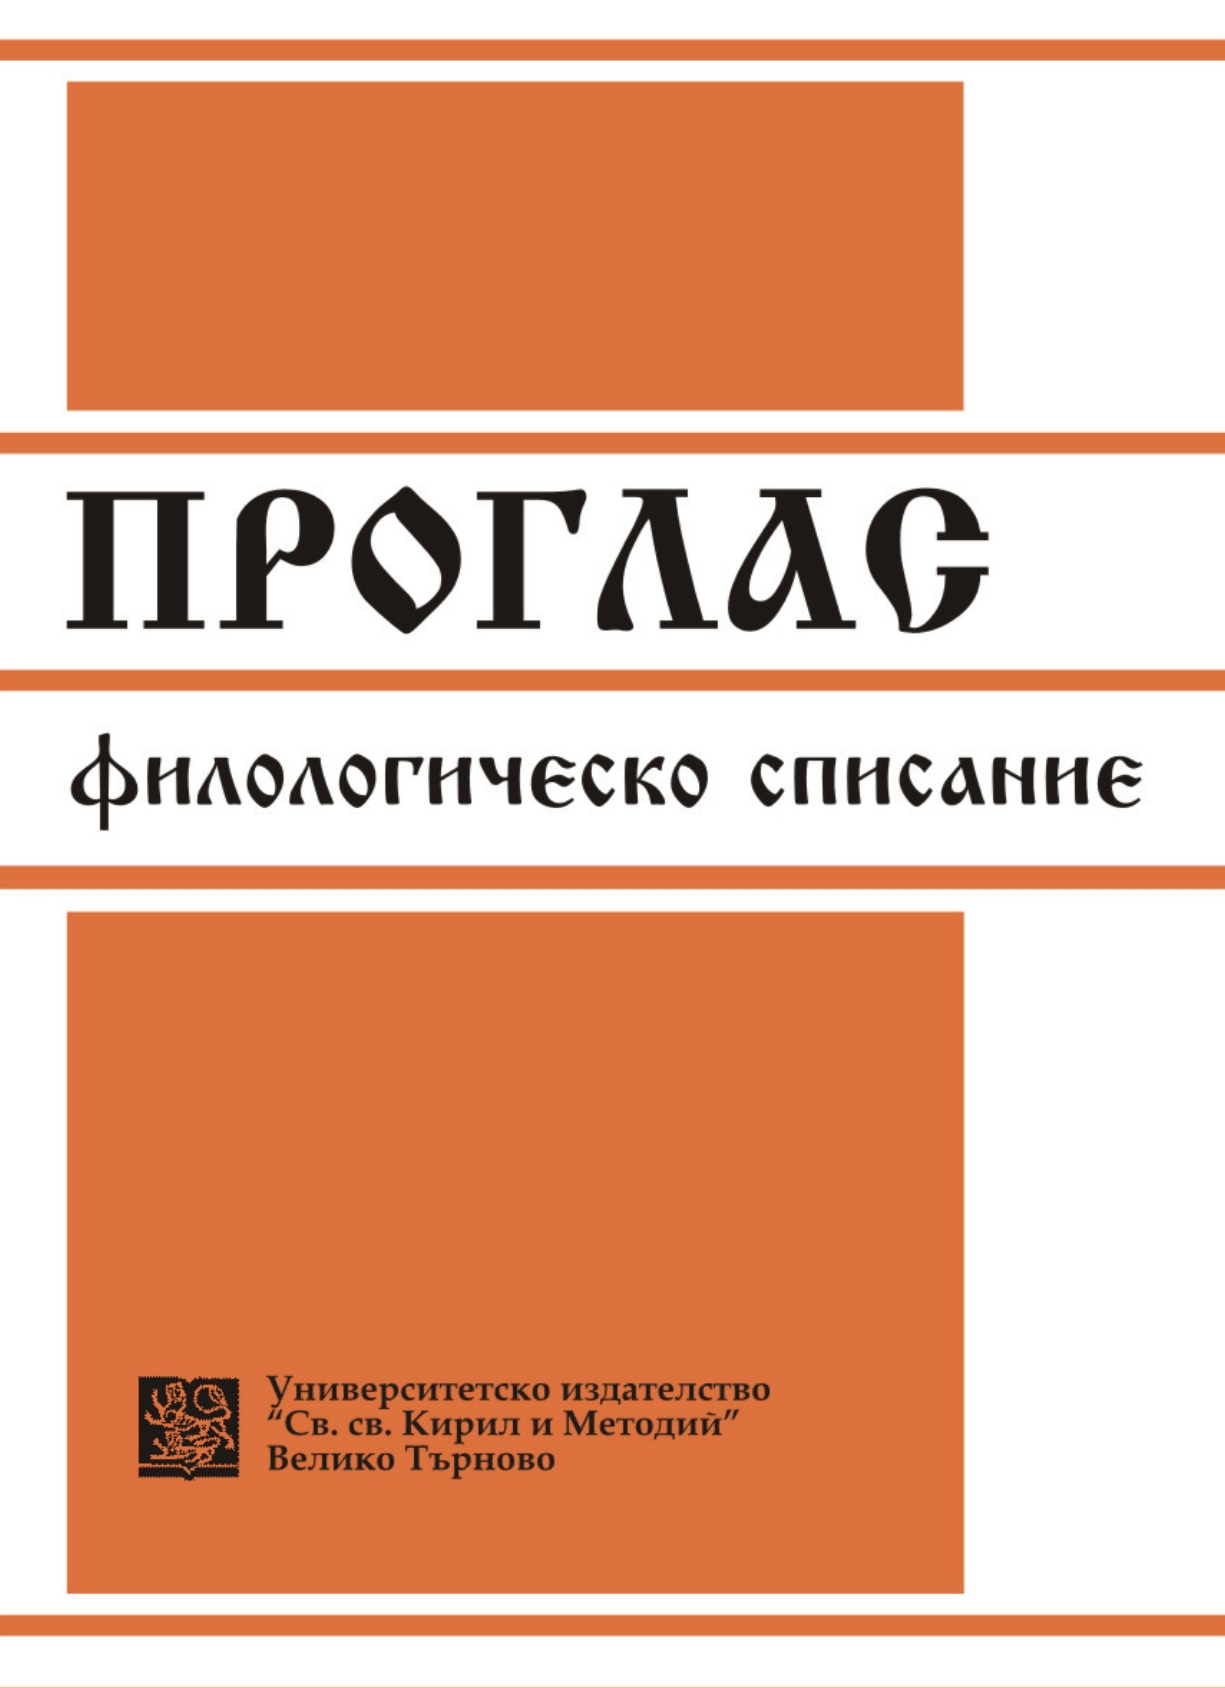 The Grammatical Form of the Pradicate as an Indicator of Politeness in Bulgarian and Polish Cover Image